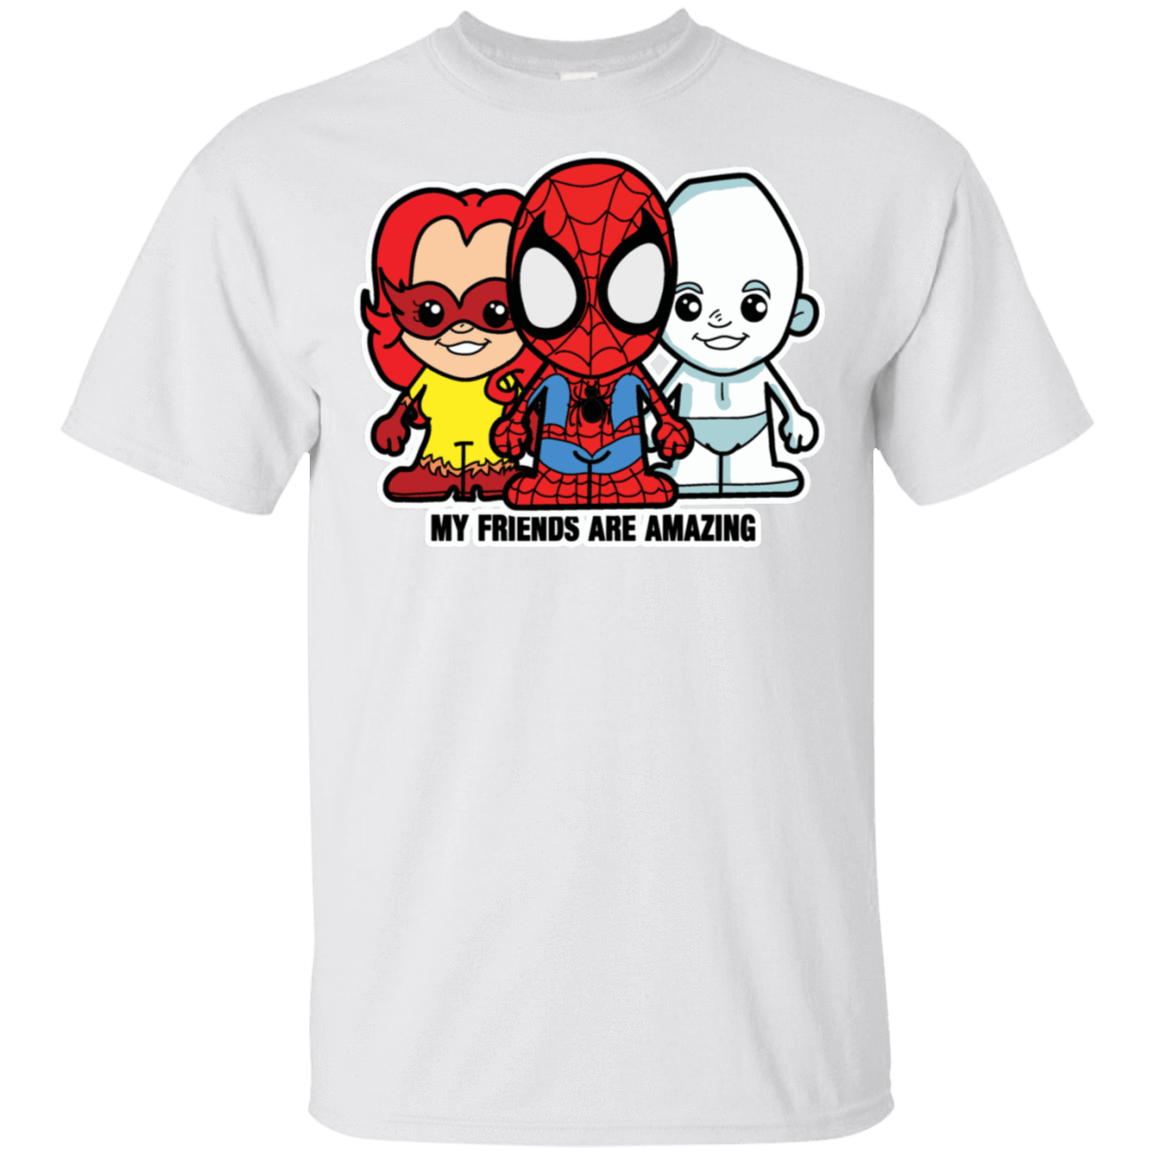 Lil Spidey and his Amazing Friends T-Shirt